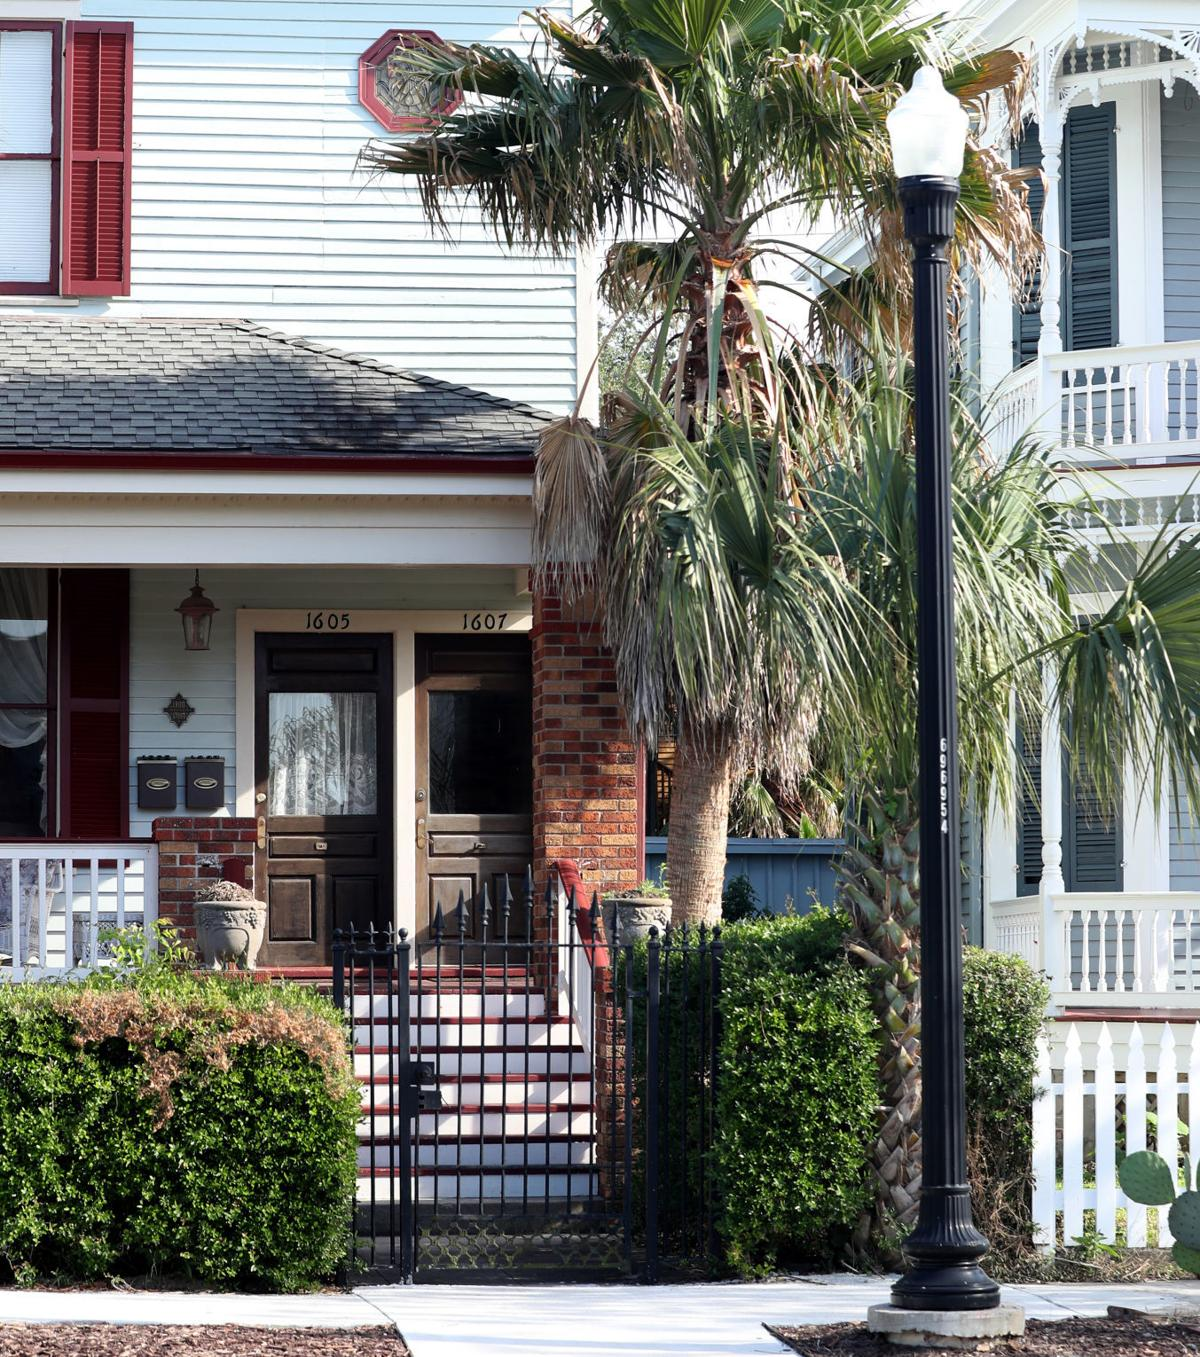 Duplexes, multifamily homes could be banned in historic districts